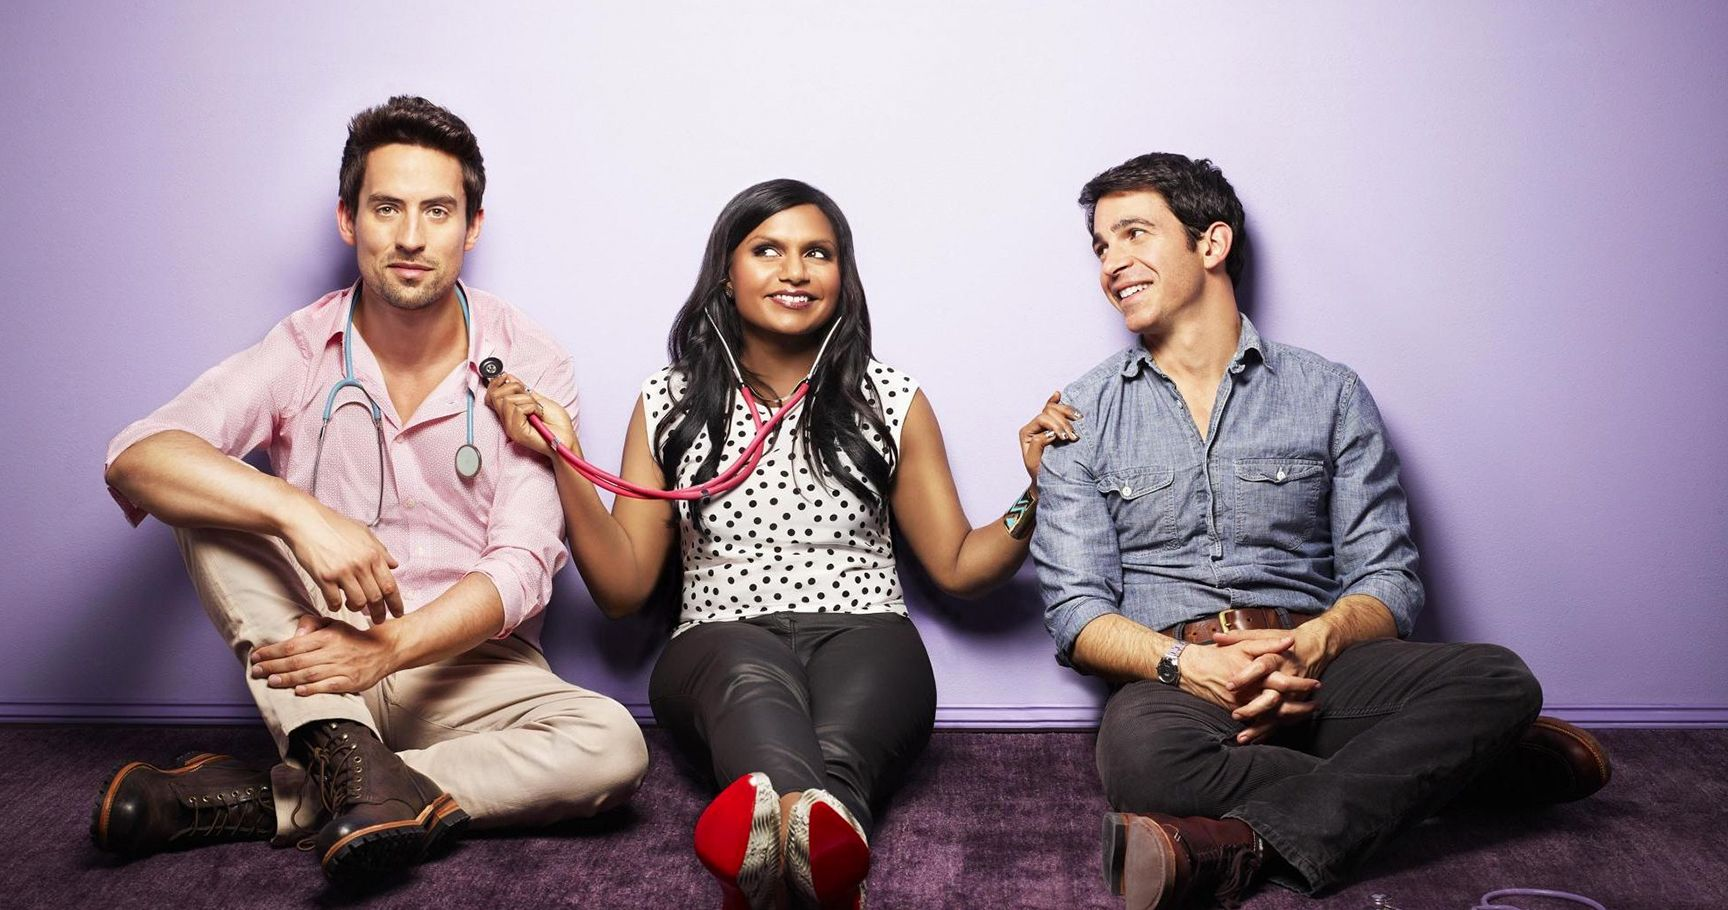 How Well Do You Know 'The Mindy Project?'